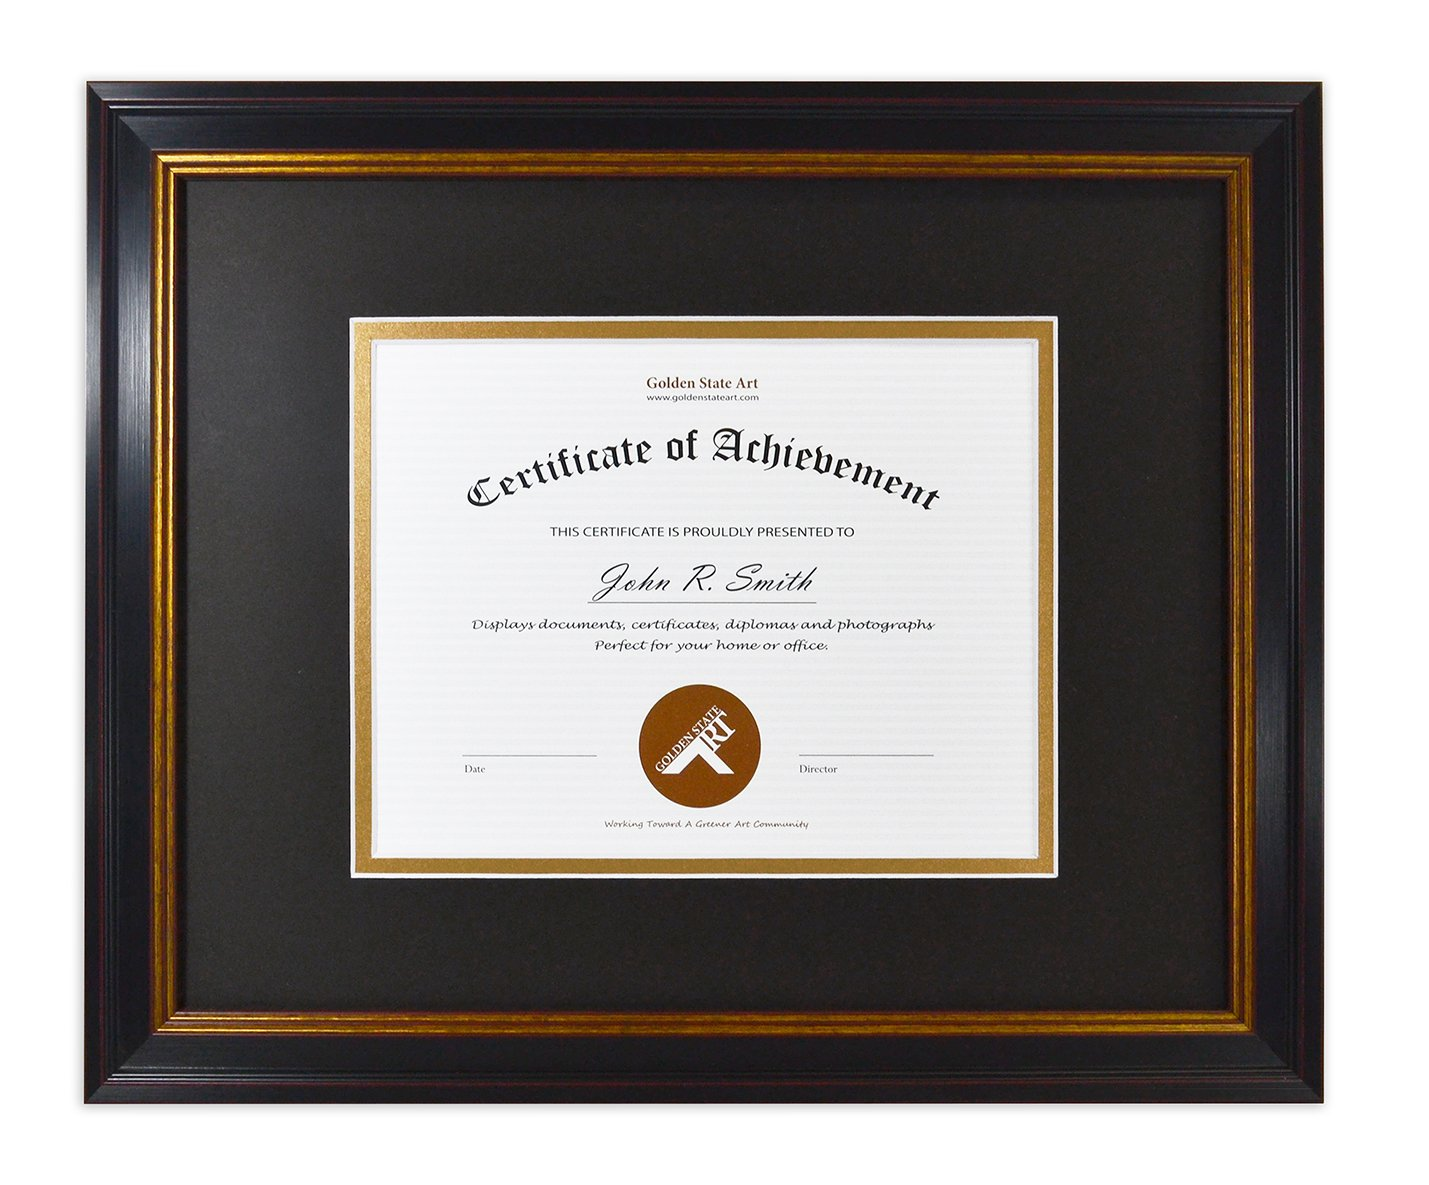 Golden State Art 11x14 Frame for 7x9 Diploma/Certificate, Black Gold & Burgundy color. Includes Black Over Gold Double Mat and Real Glass SF0259